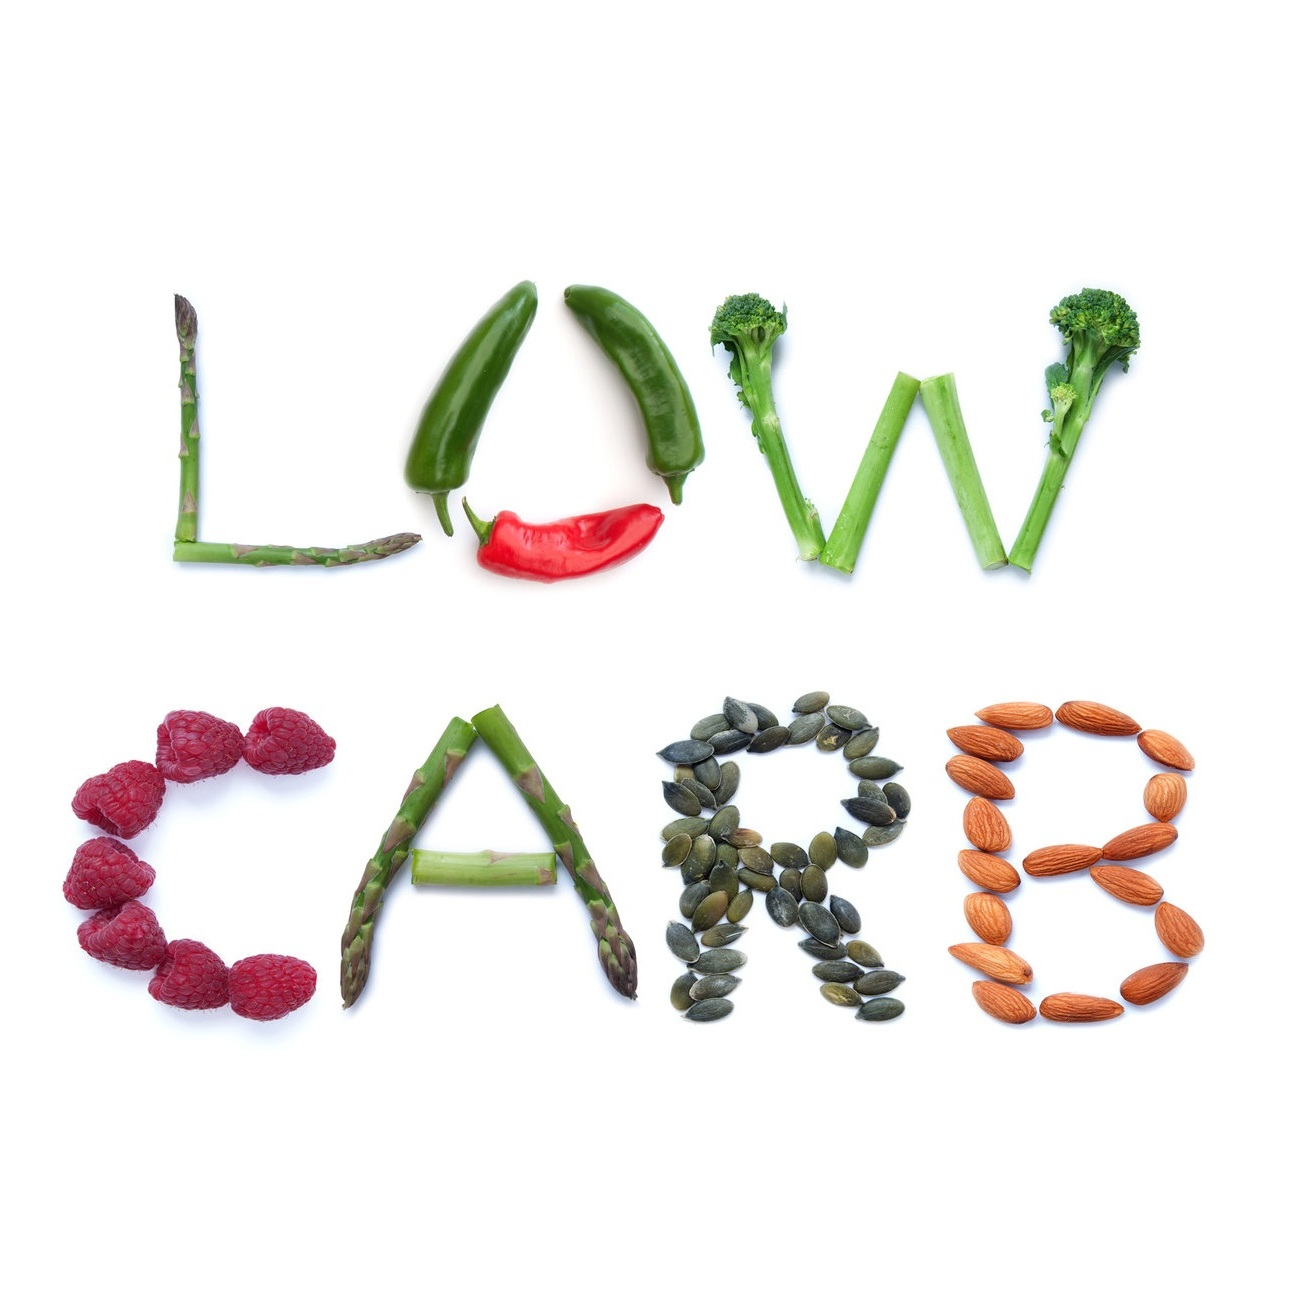 What Are The Benefits Of Eating Low Carb -